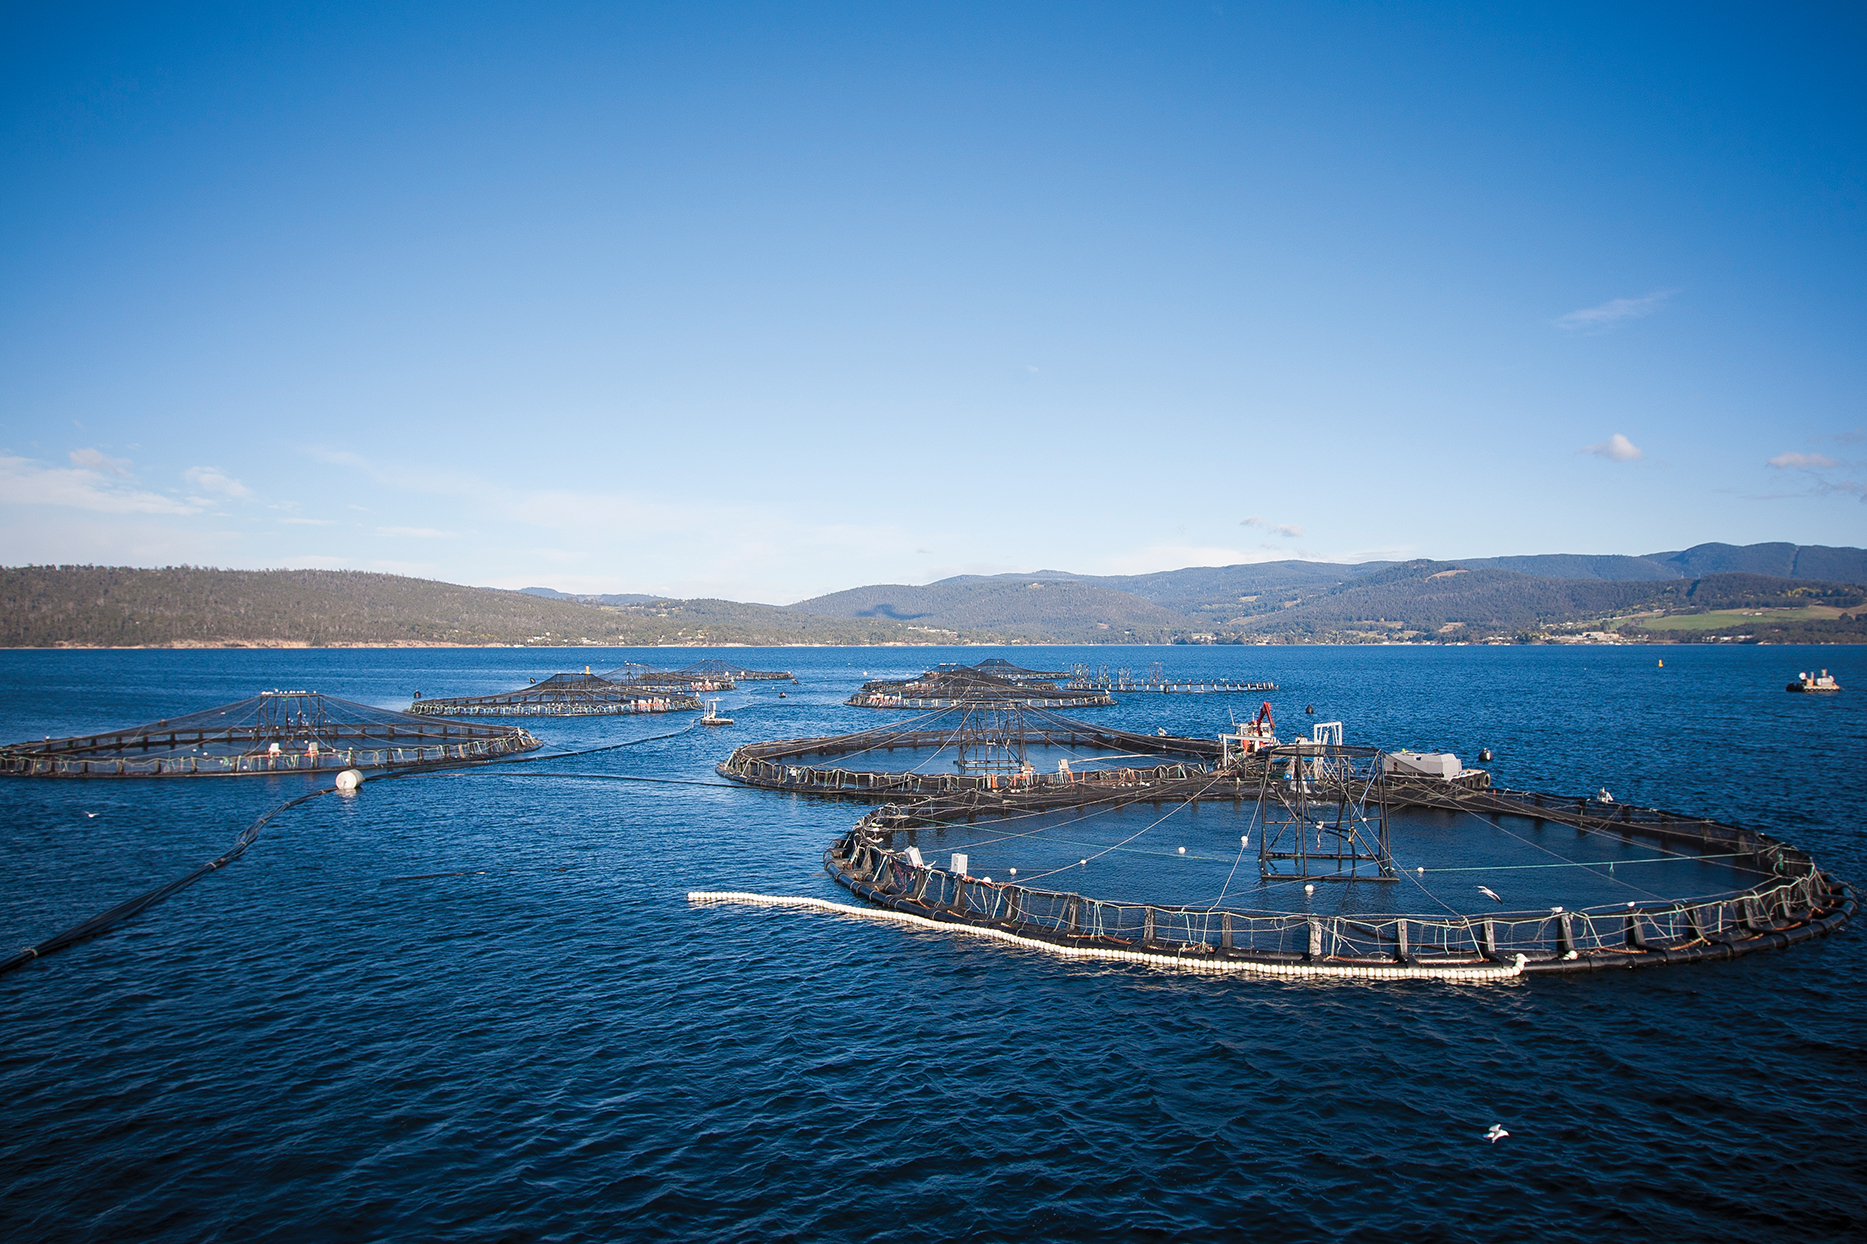 Several salmon farms on water with land in the background.